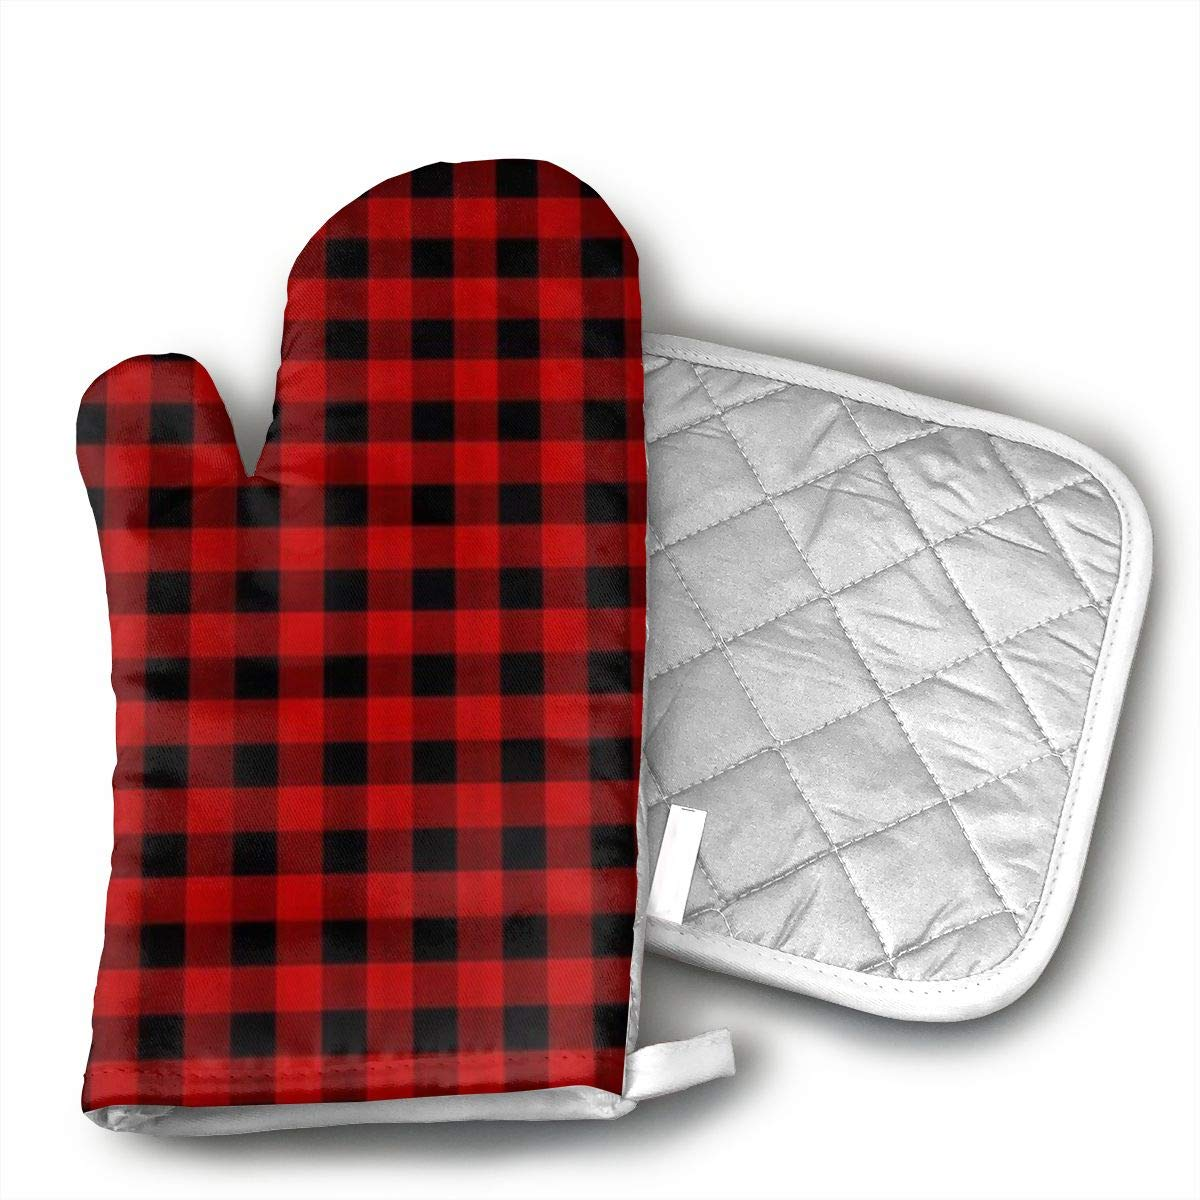 FGXQN Custom Rustic Red Black Buffalo Check Plaid Pattern Oven Mitts Cotton Quilting Lining, Oven Gloves and Pot Holders Kitchen Set for BBQ Cooking Baking, Grilling, Barbecue,